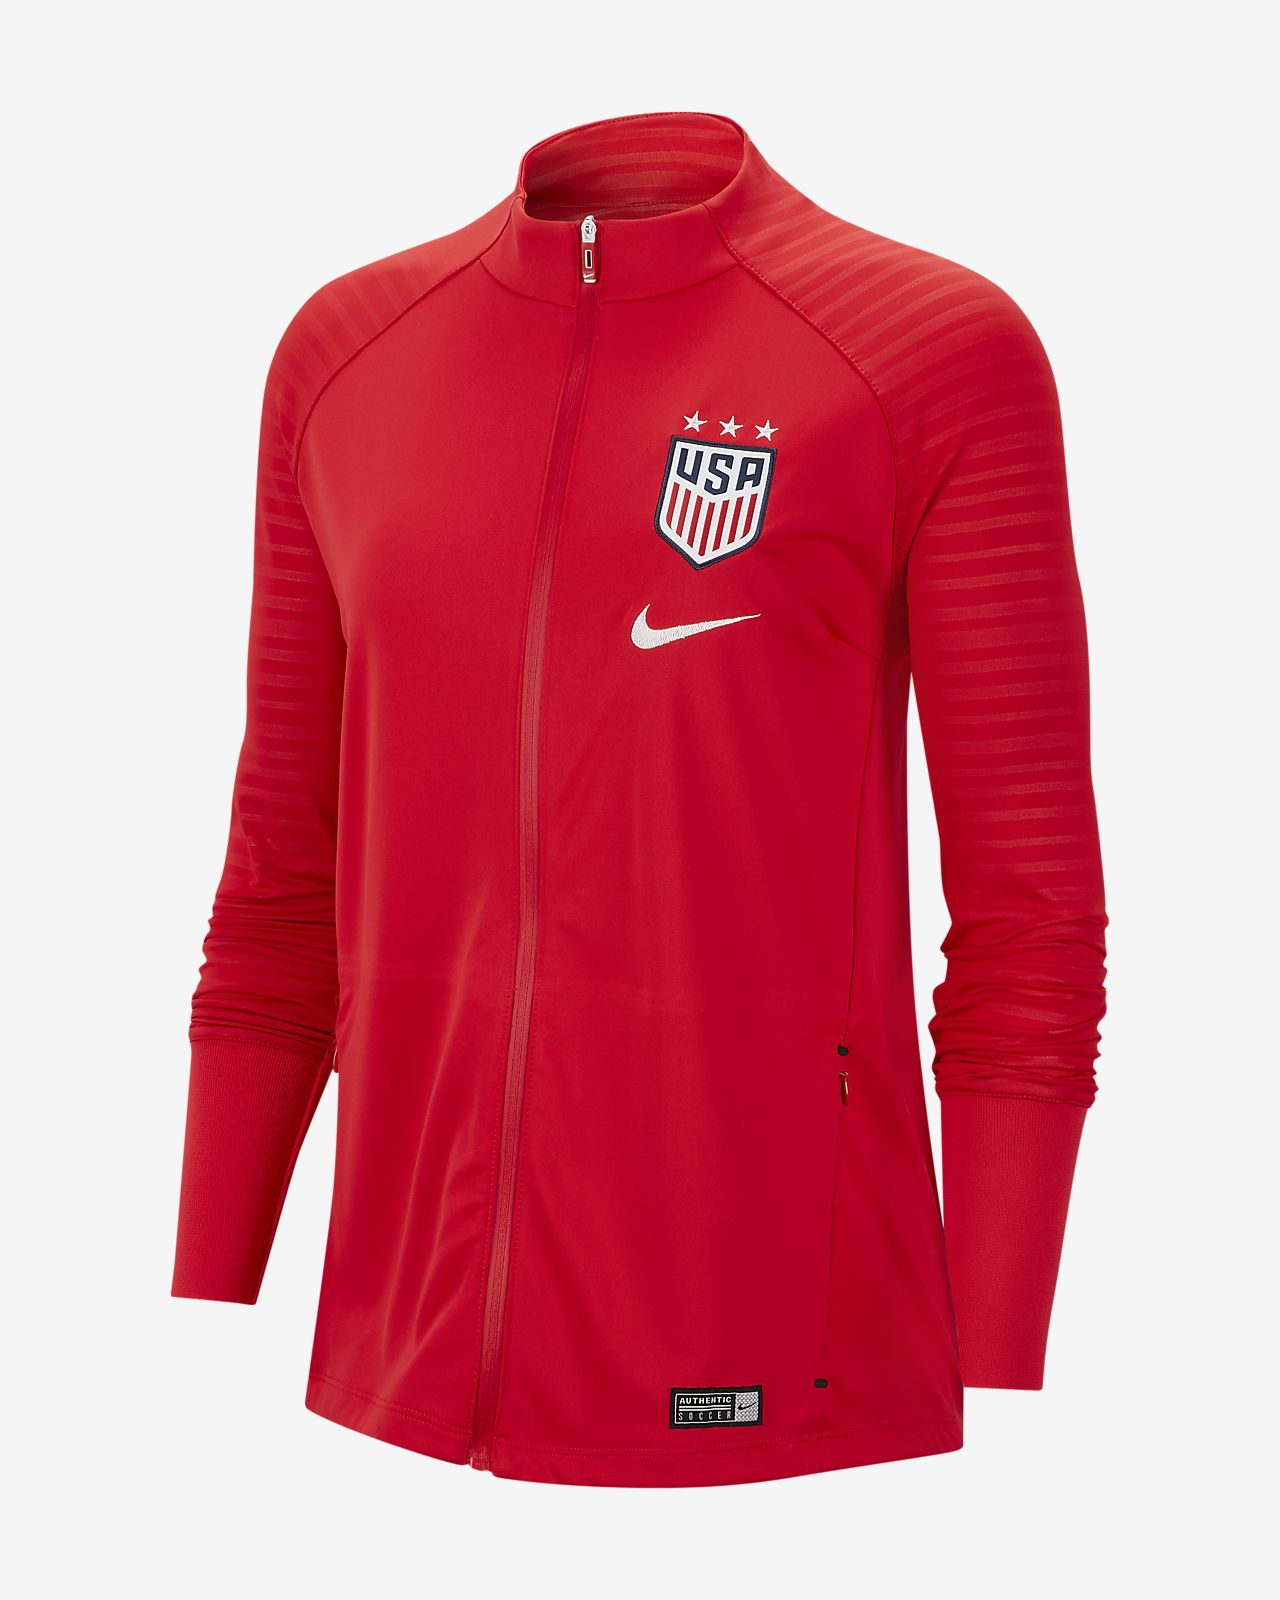 U.S. Soccer Women's Jacket